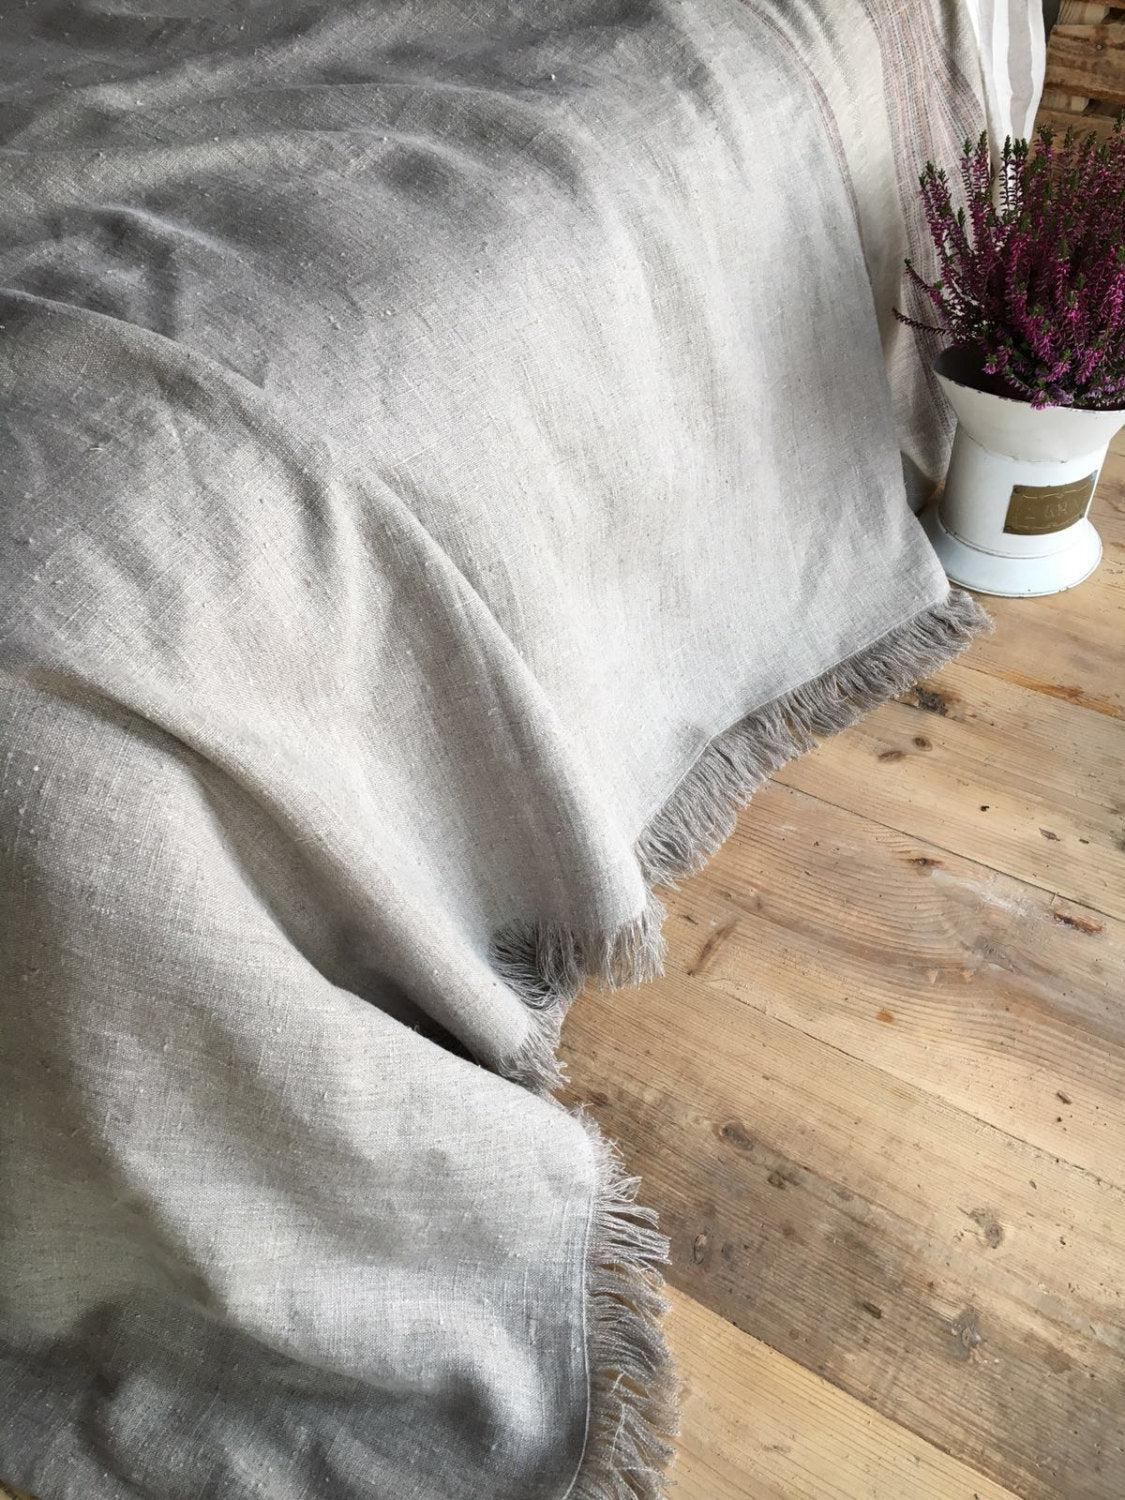 Natural linen cover, Textured Linen Throw, Light Blanket, Light Throw, Natural Blanket, Daybed blanket, Summer Blanket, European Linen